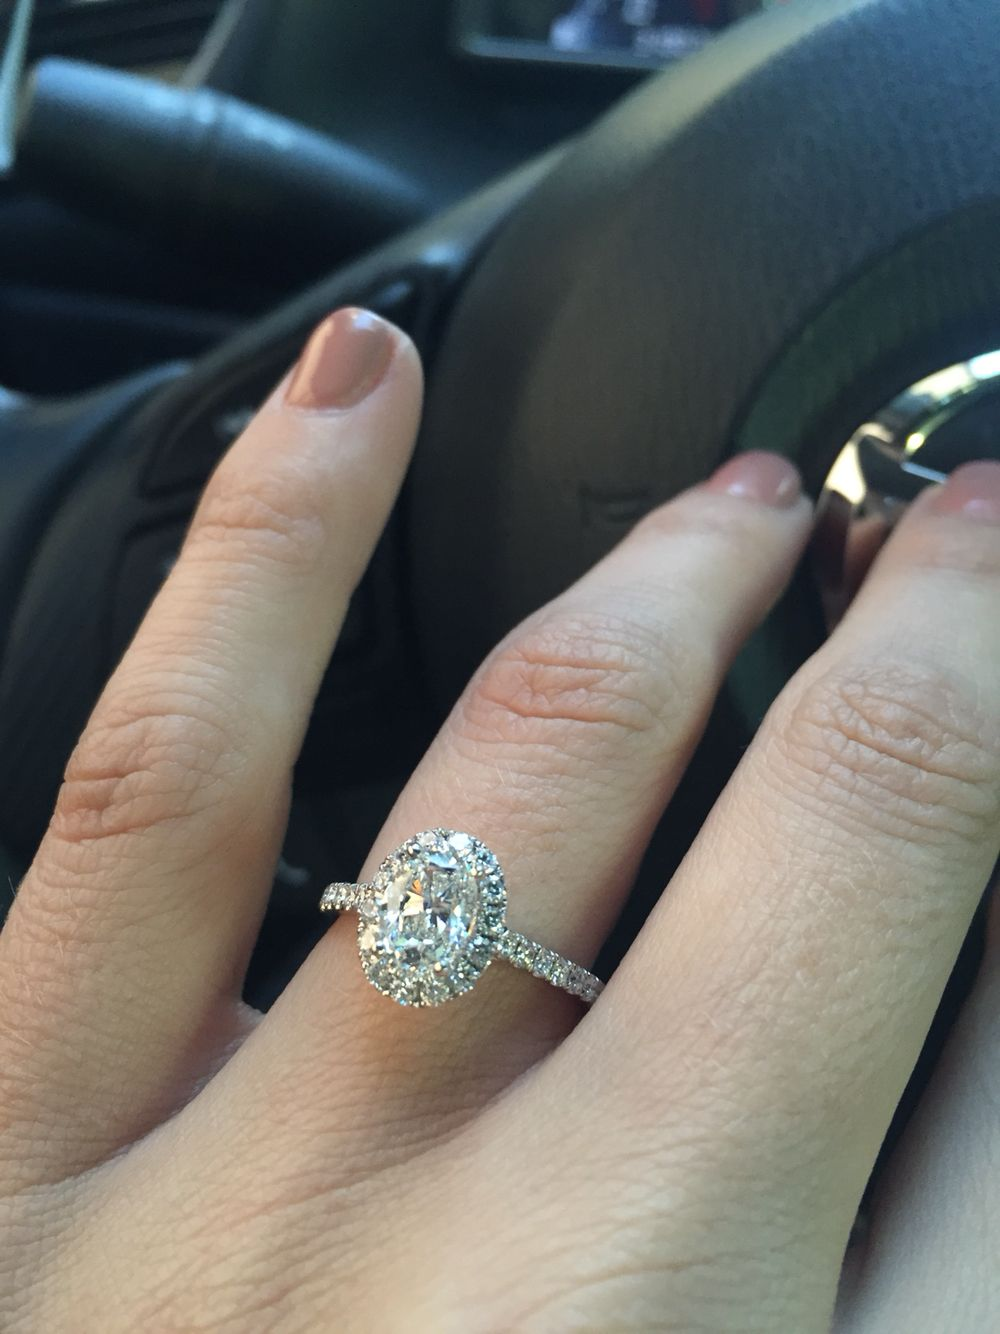 One Carat Oval Diamond Halo Ring From Leo Hamel Jewelers In San